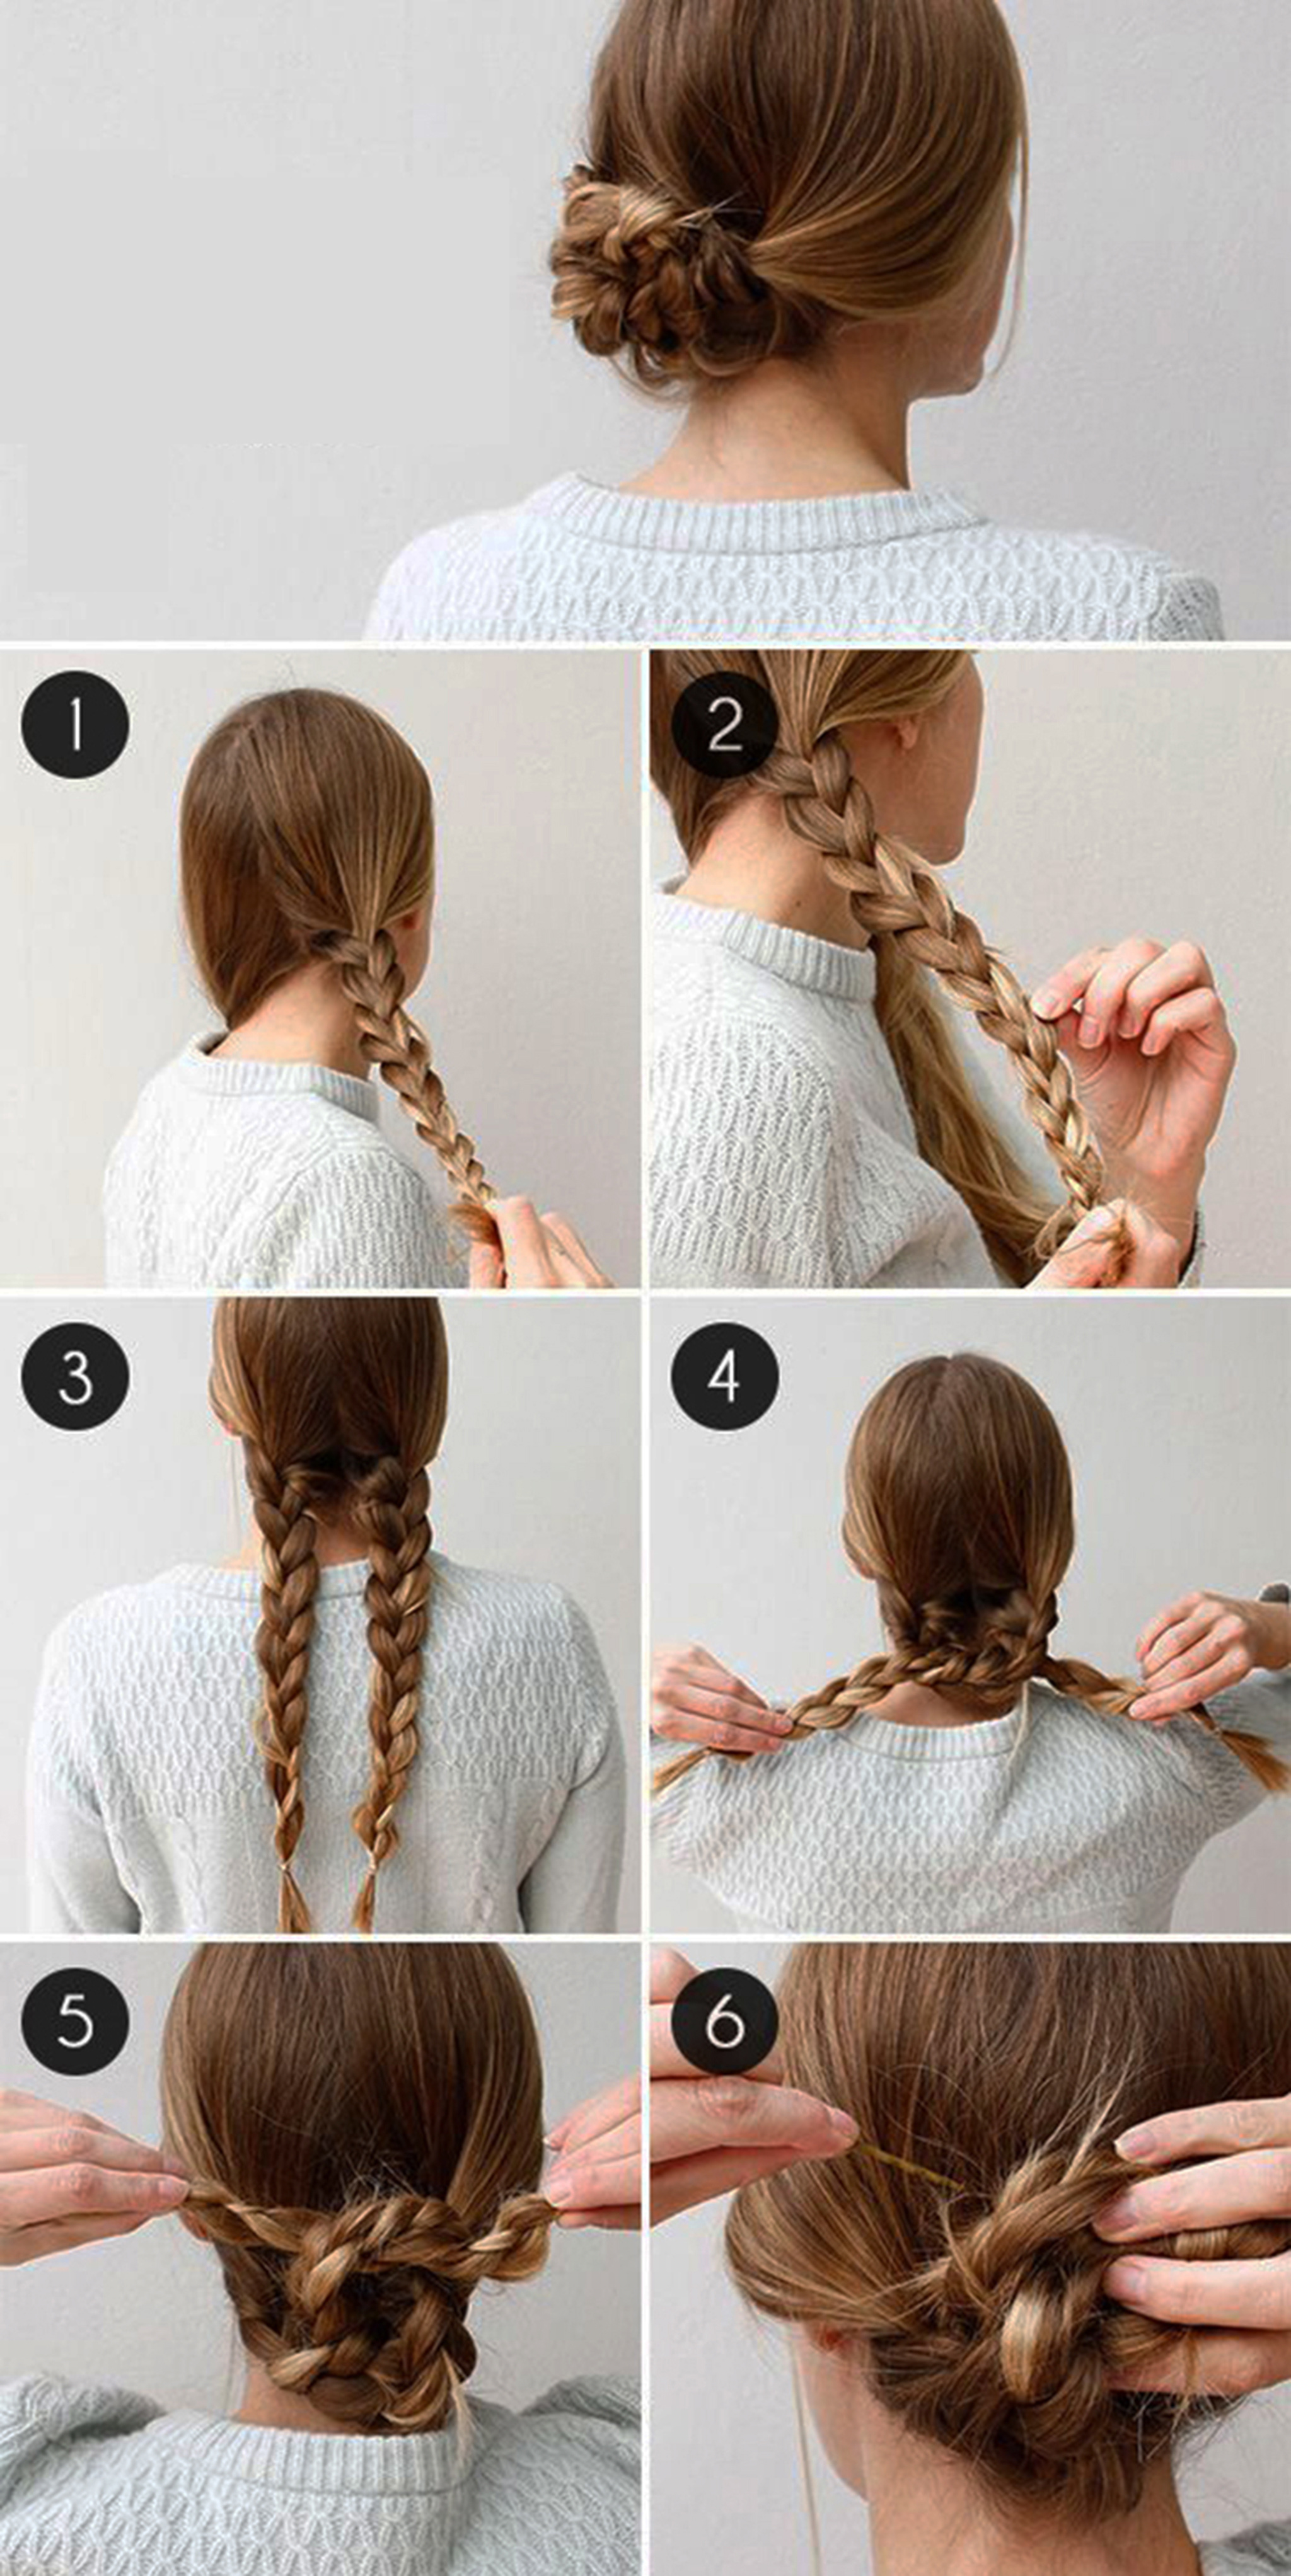 Easy Step By Step Tutorials On How To Do Braided Hairstyle ...